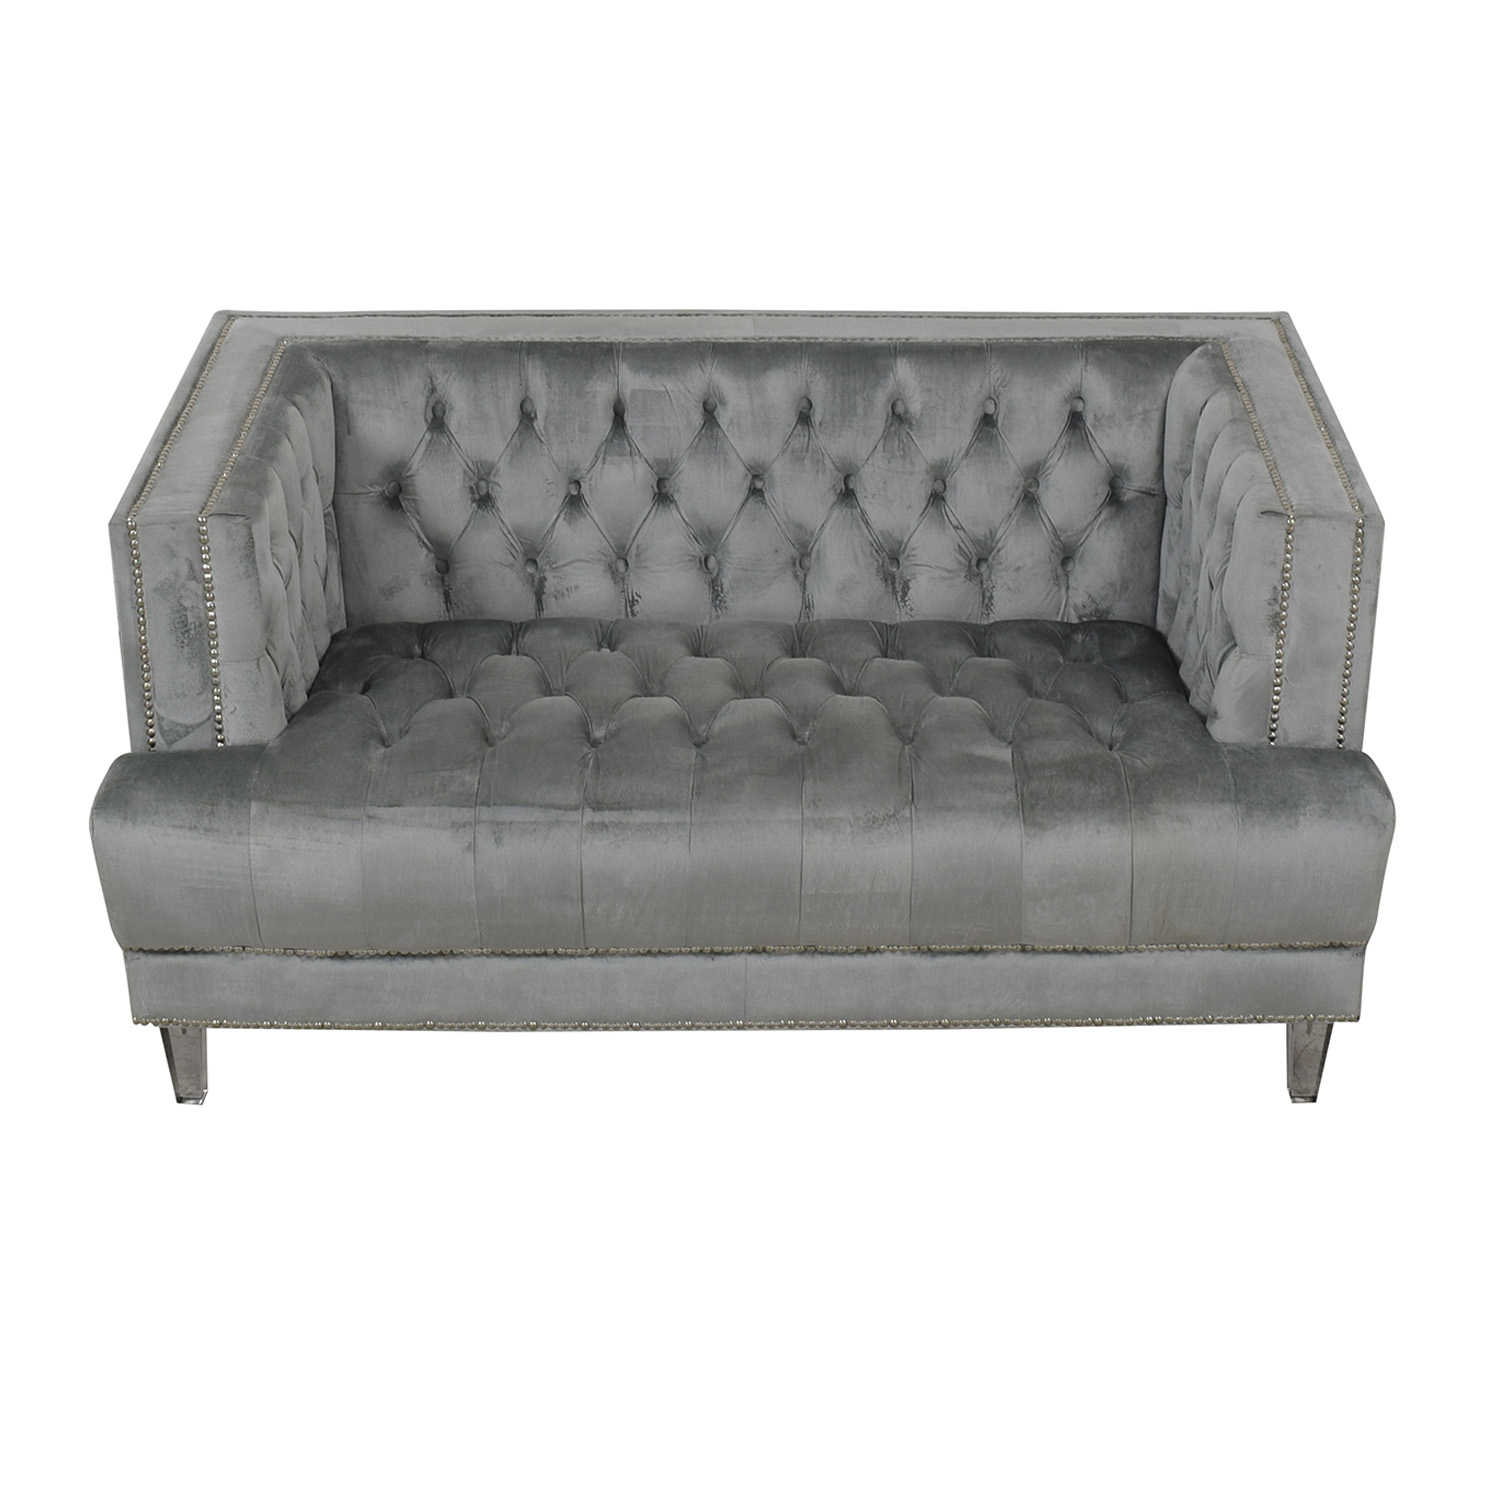 buy Tufted Chesterfield Loveseat